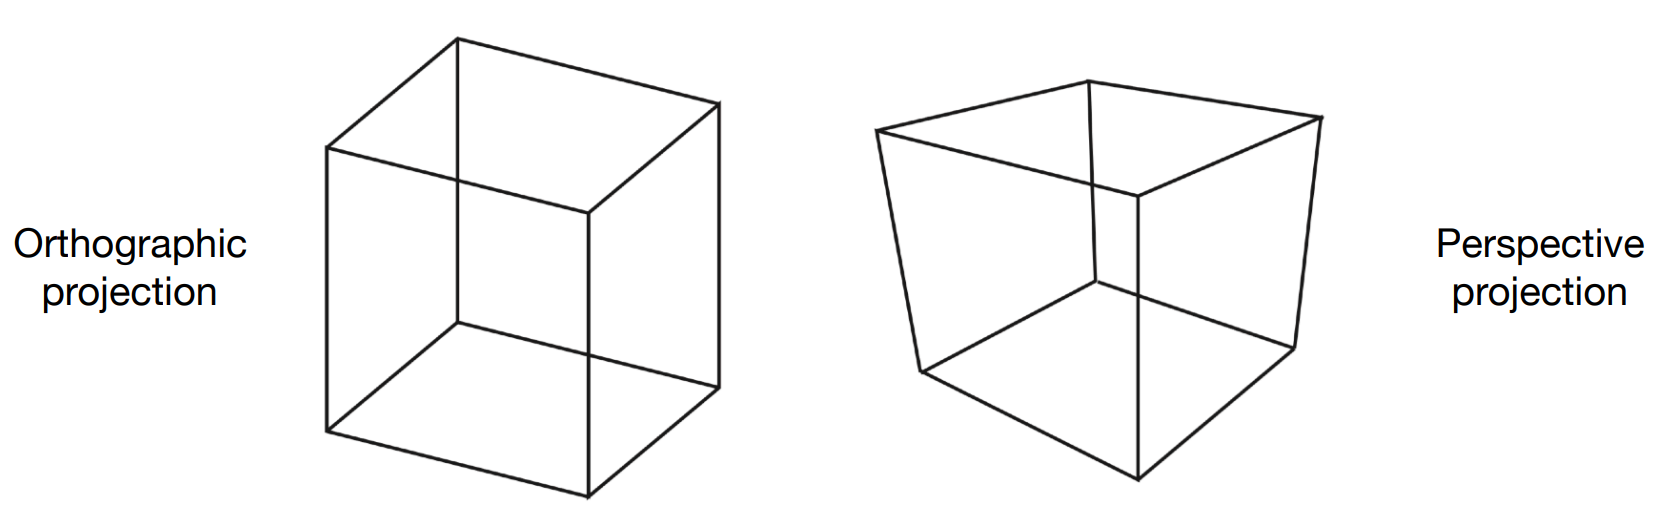 Fig. 7.1 from Fundamentals of Computer Graphics, 4th Edition